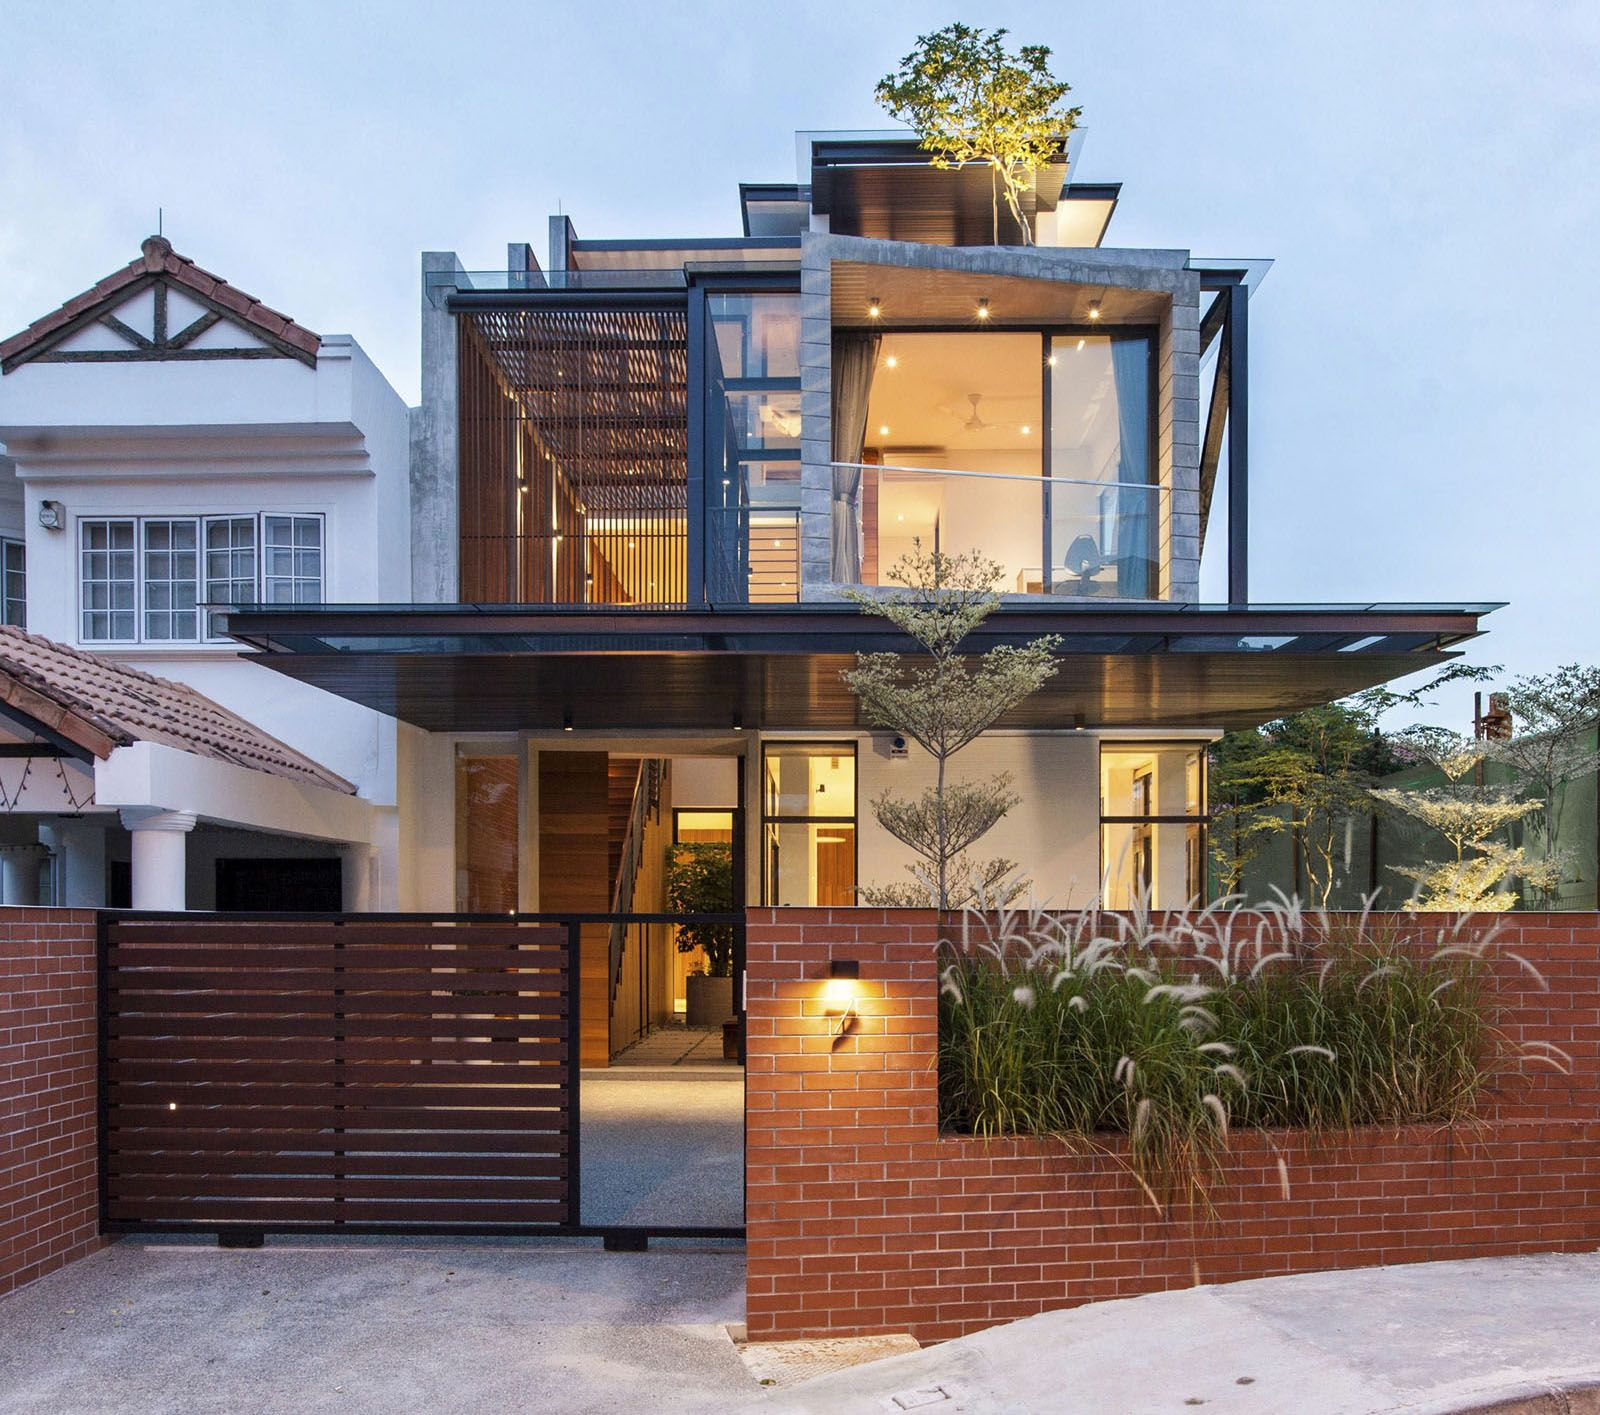 Modern Semi-Detached House In Singapore | Houses and Interior Design ...